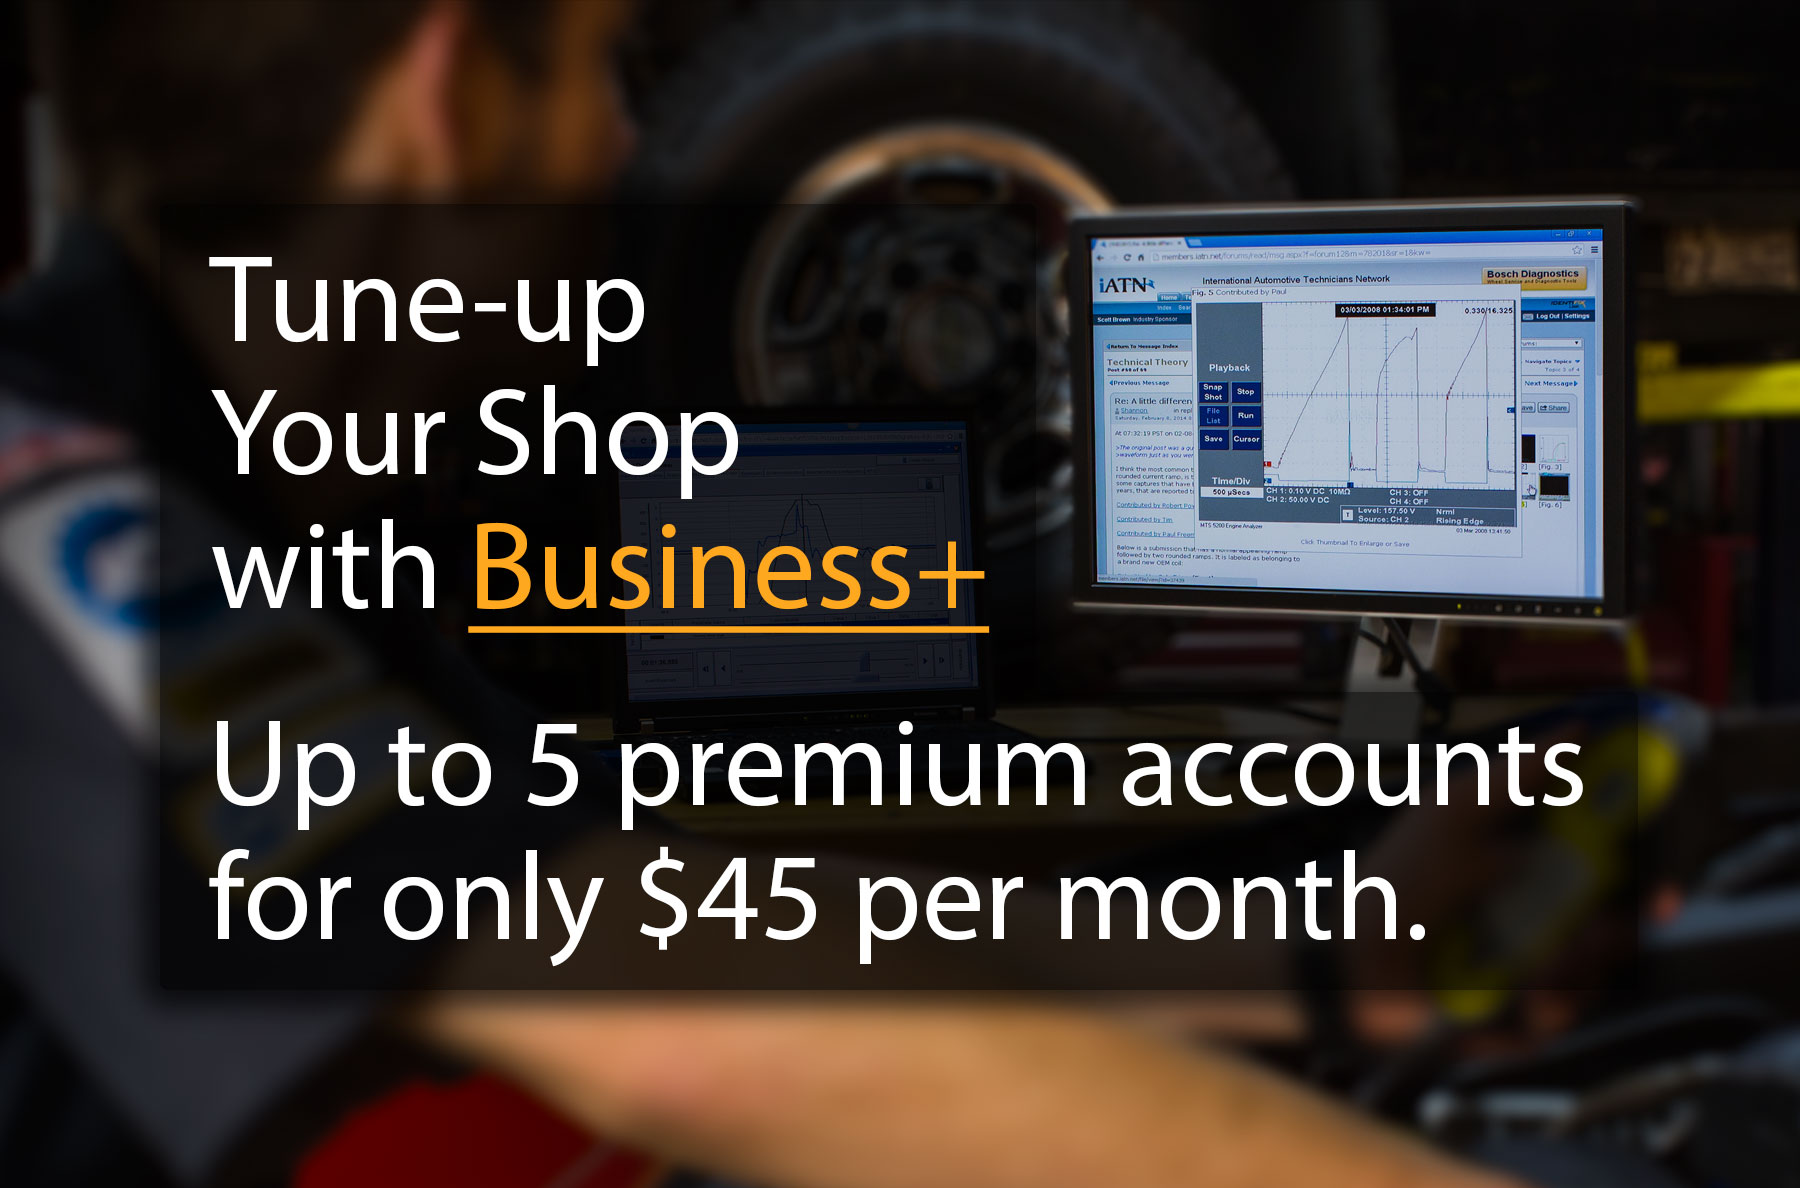 Tune-up your shop with Business+. Up to 5 premium accounts for only $45 per month.